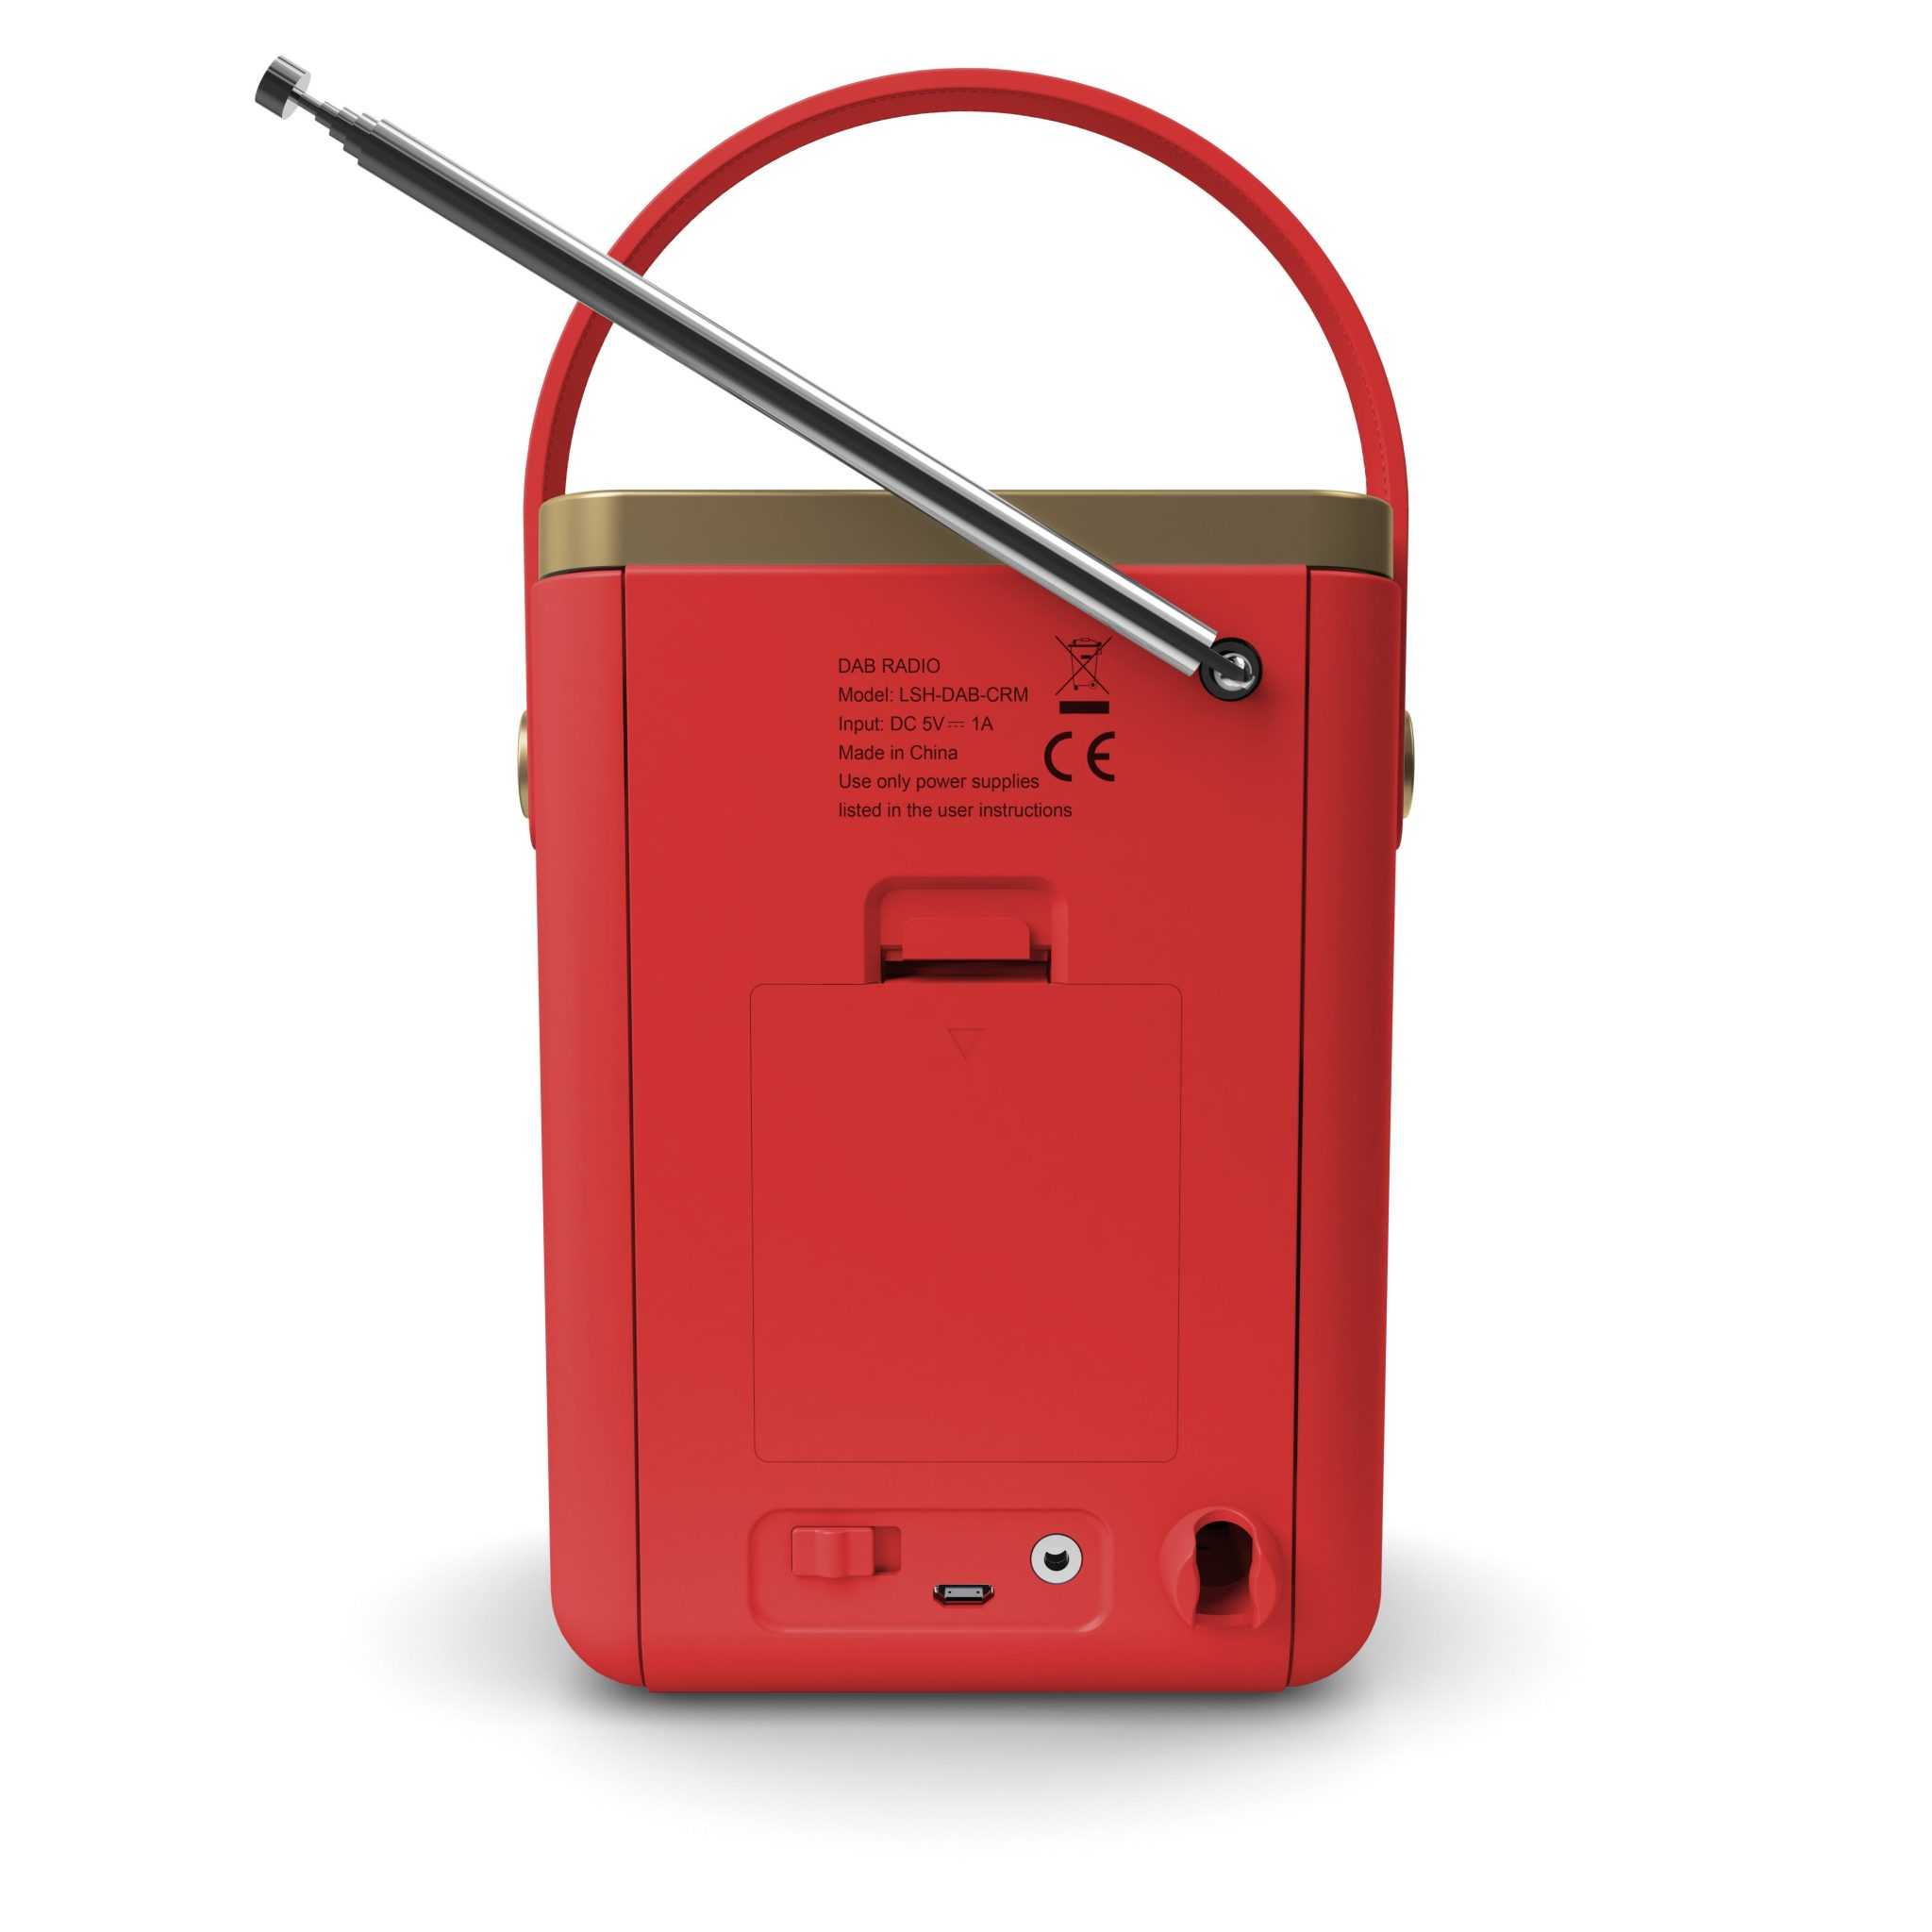 DAB Radio with Bluetooth - Little Shelford Red Back